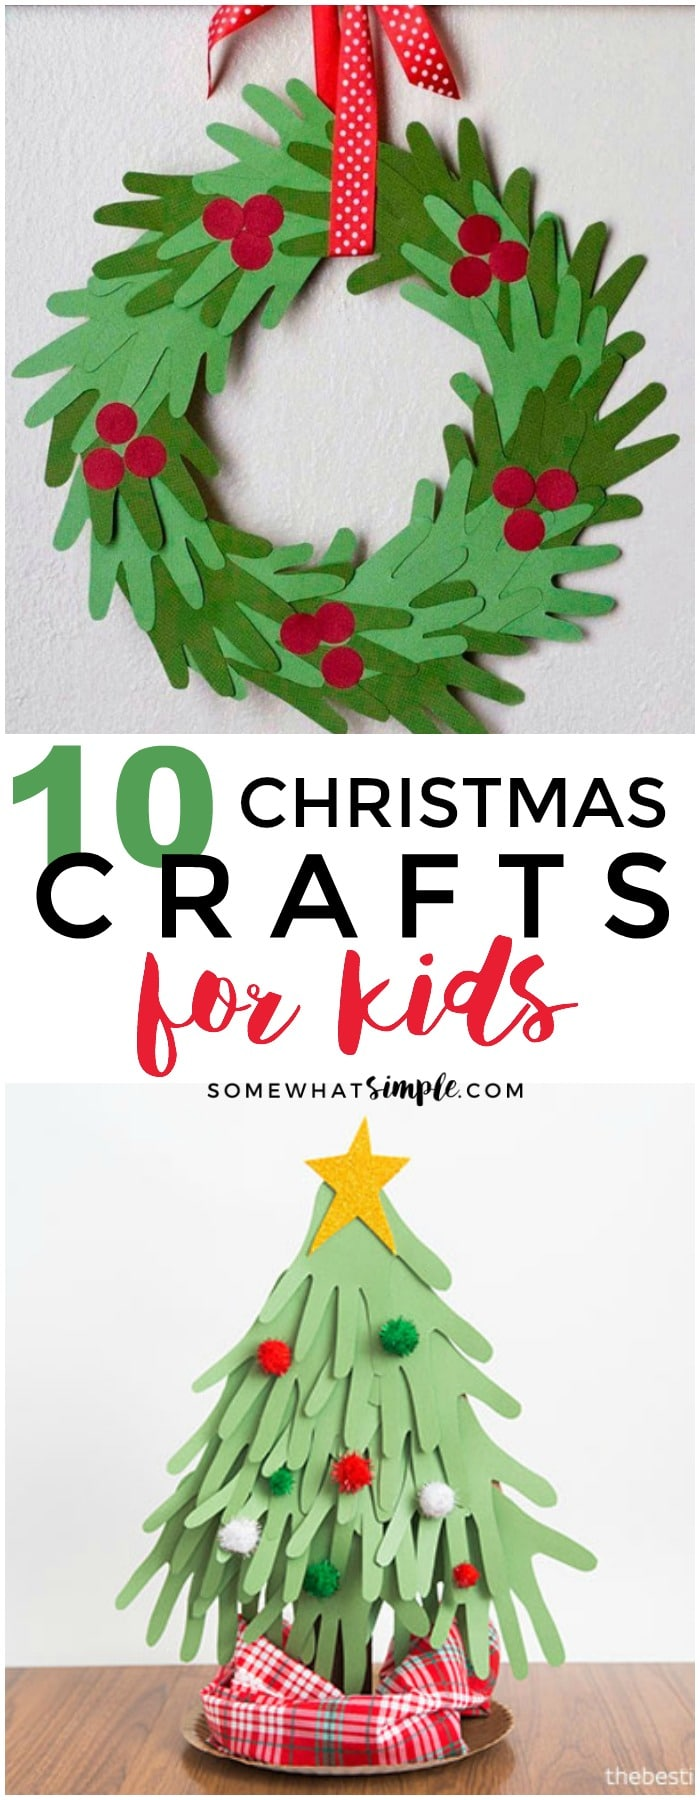 10 of our favorite EASY Christmas Crafts for Kids that arenot only adorable, but they are super SIMPLE too!